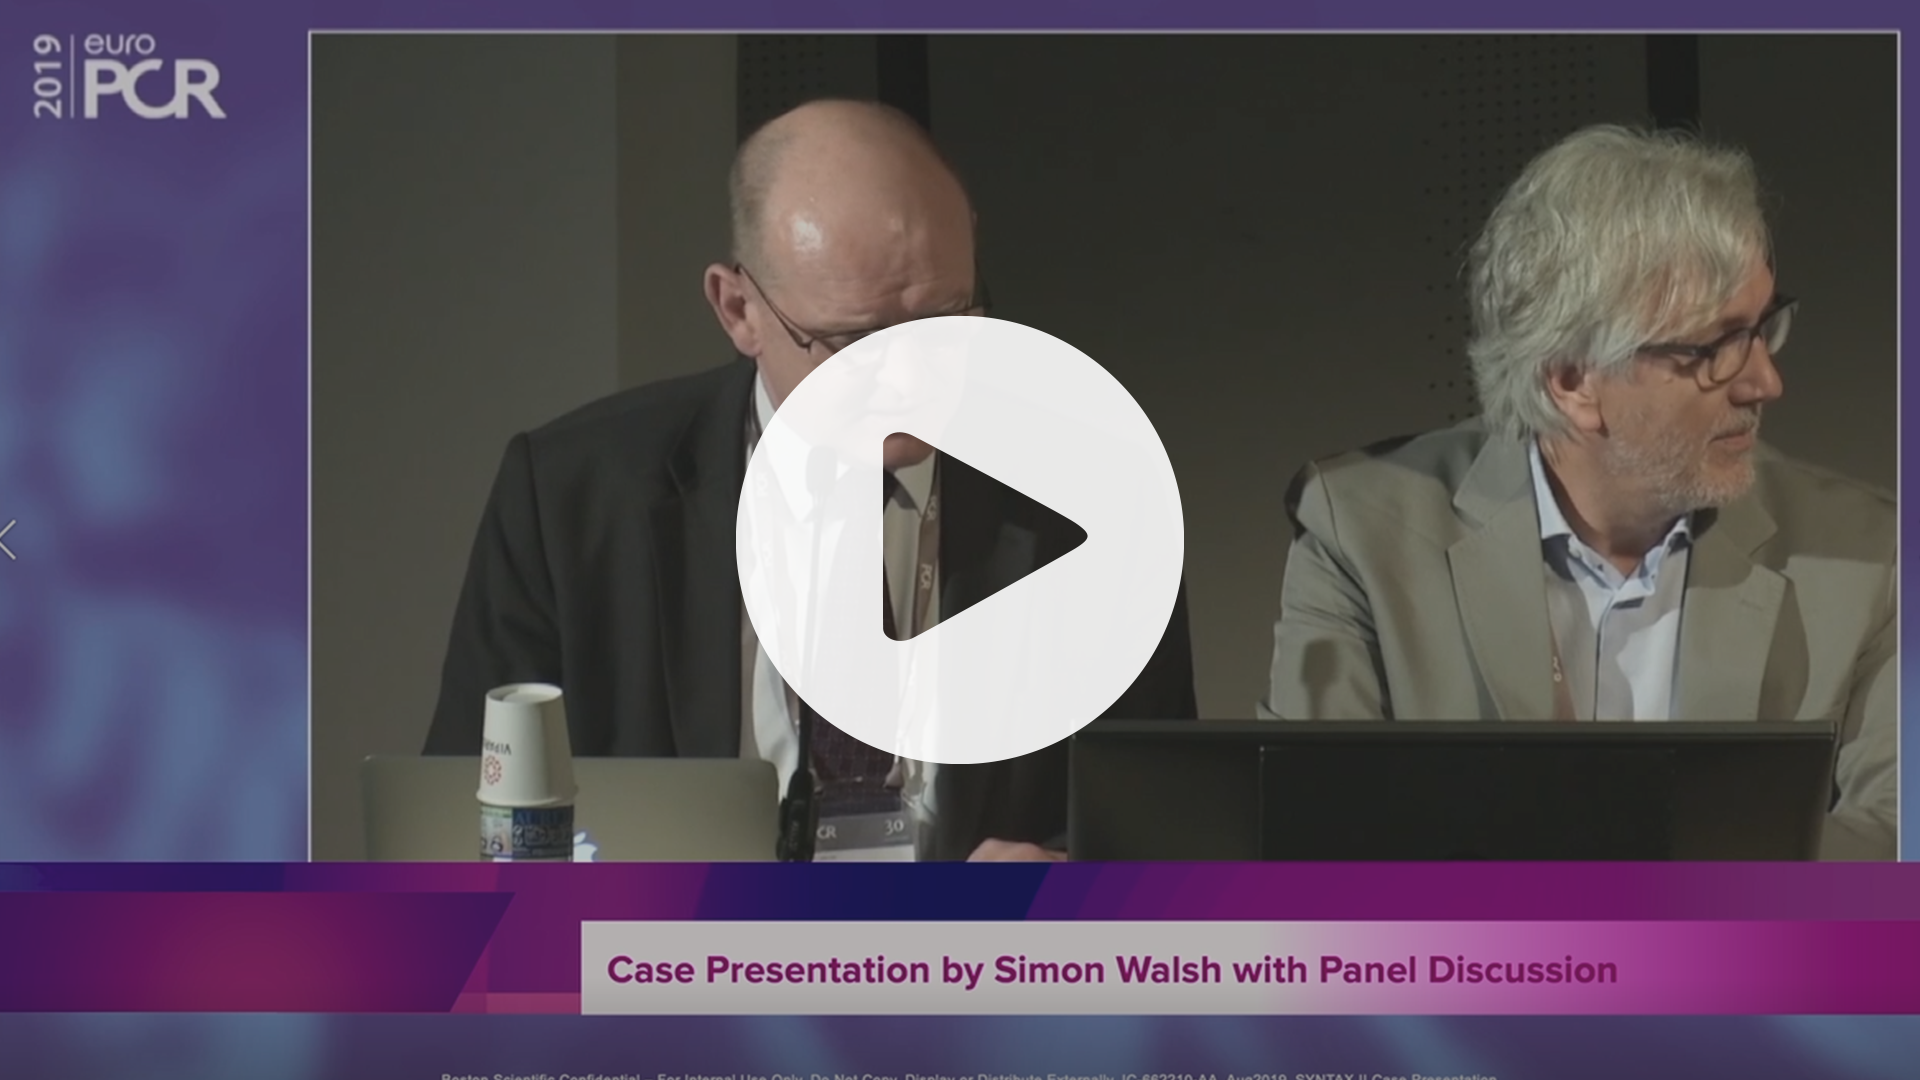 SYNTAX II Case Presentation By Simon Walsh, VIdeo